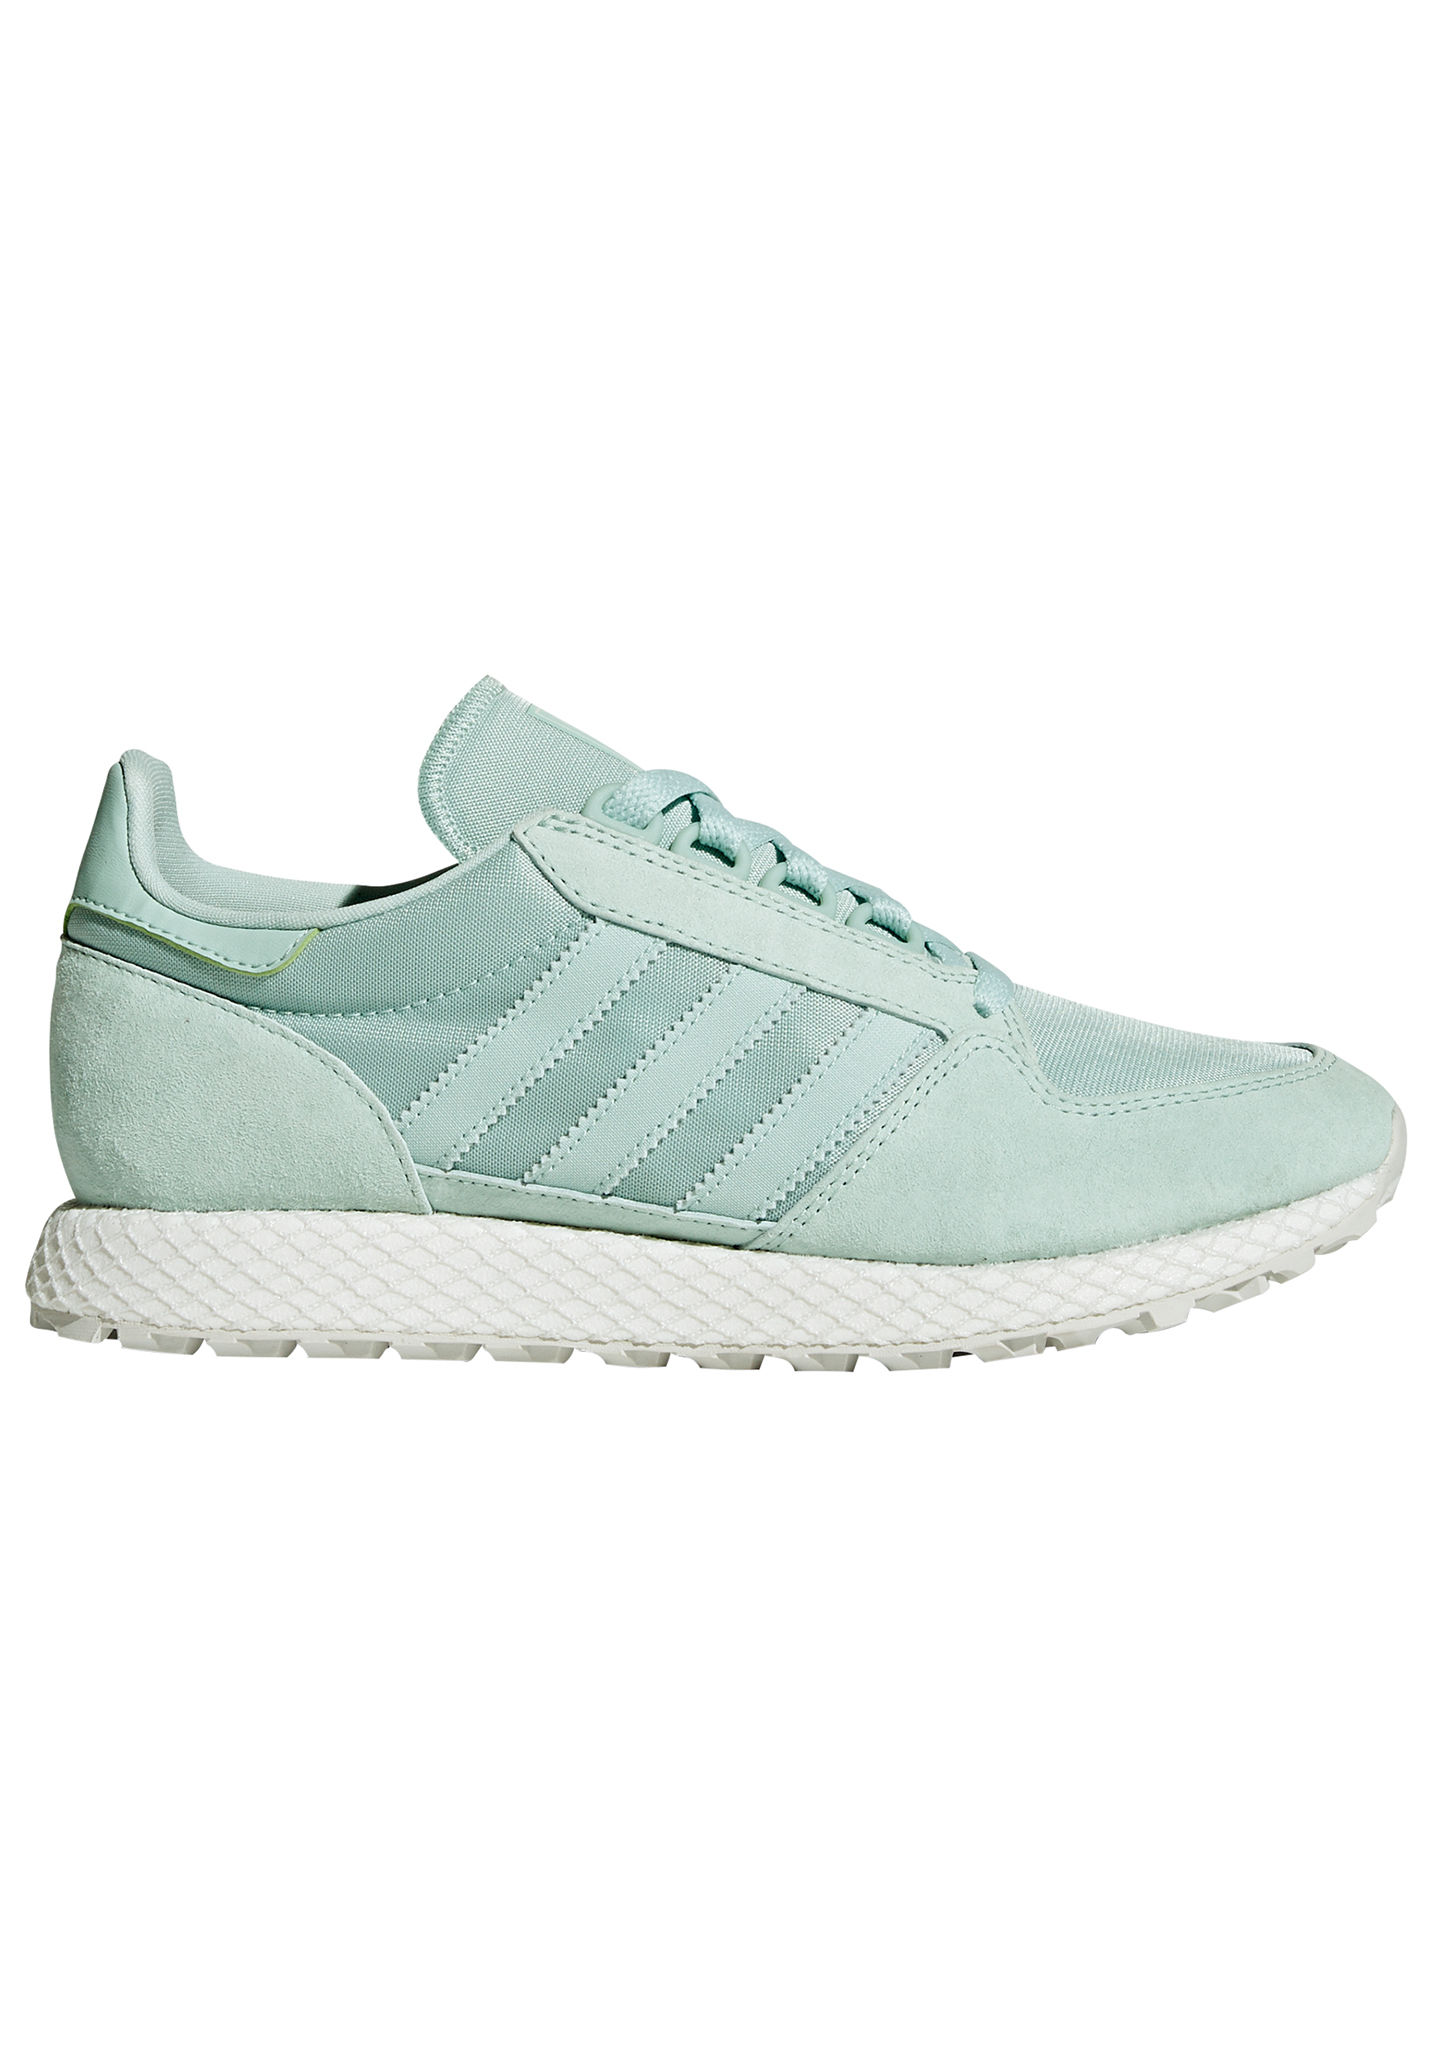 e8b774dd63a ADIDAS ORIGINALS Forest Grove - Sneakers for Women - Green - Planet Sports